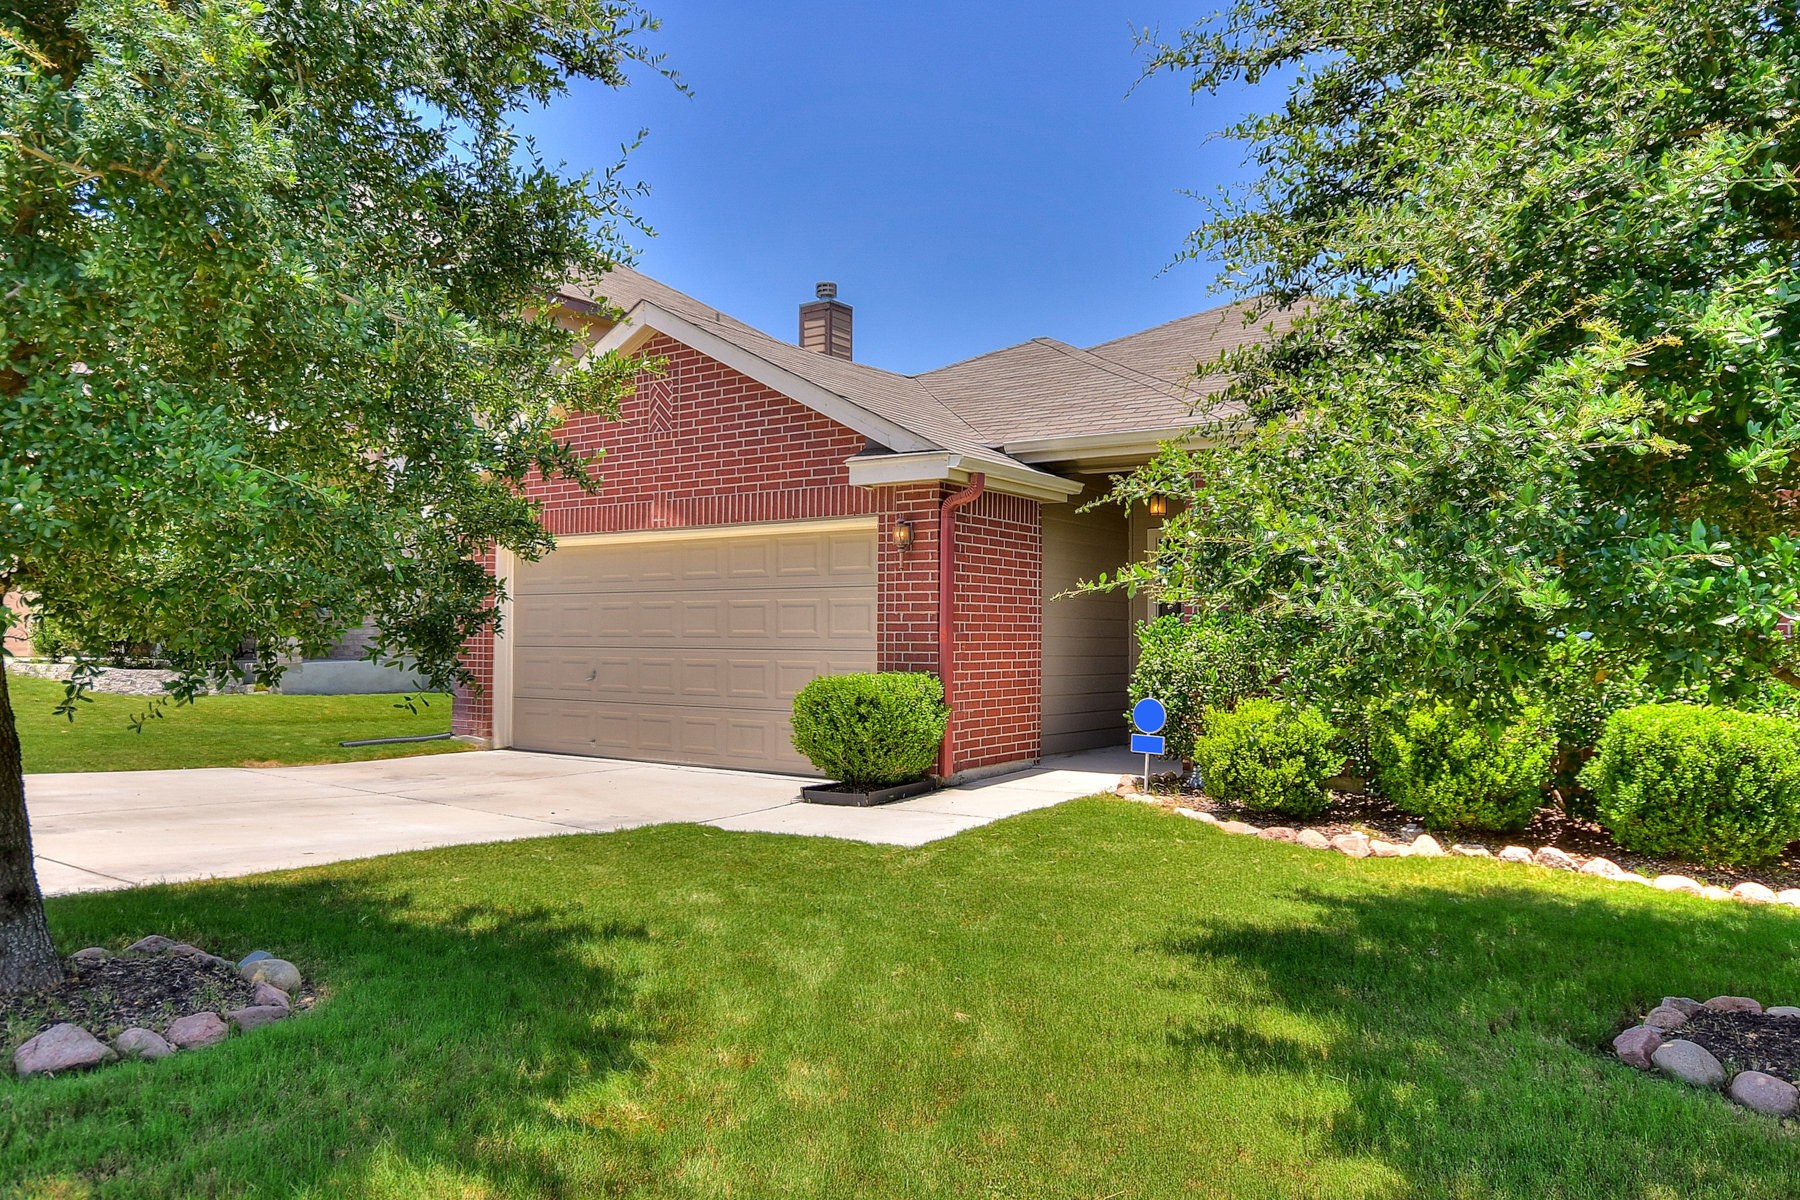 Additional photo for property listing at Beautiful One-Story Home in Cibolo Vista 108 Canyon Vis Cibolo, Texas 78108 United States